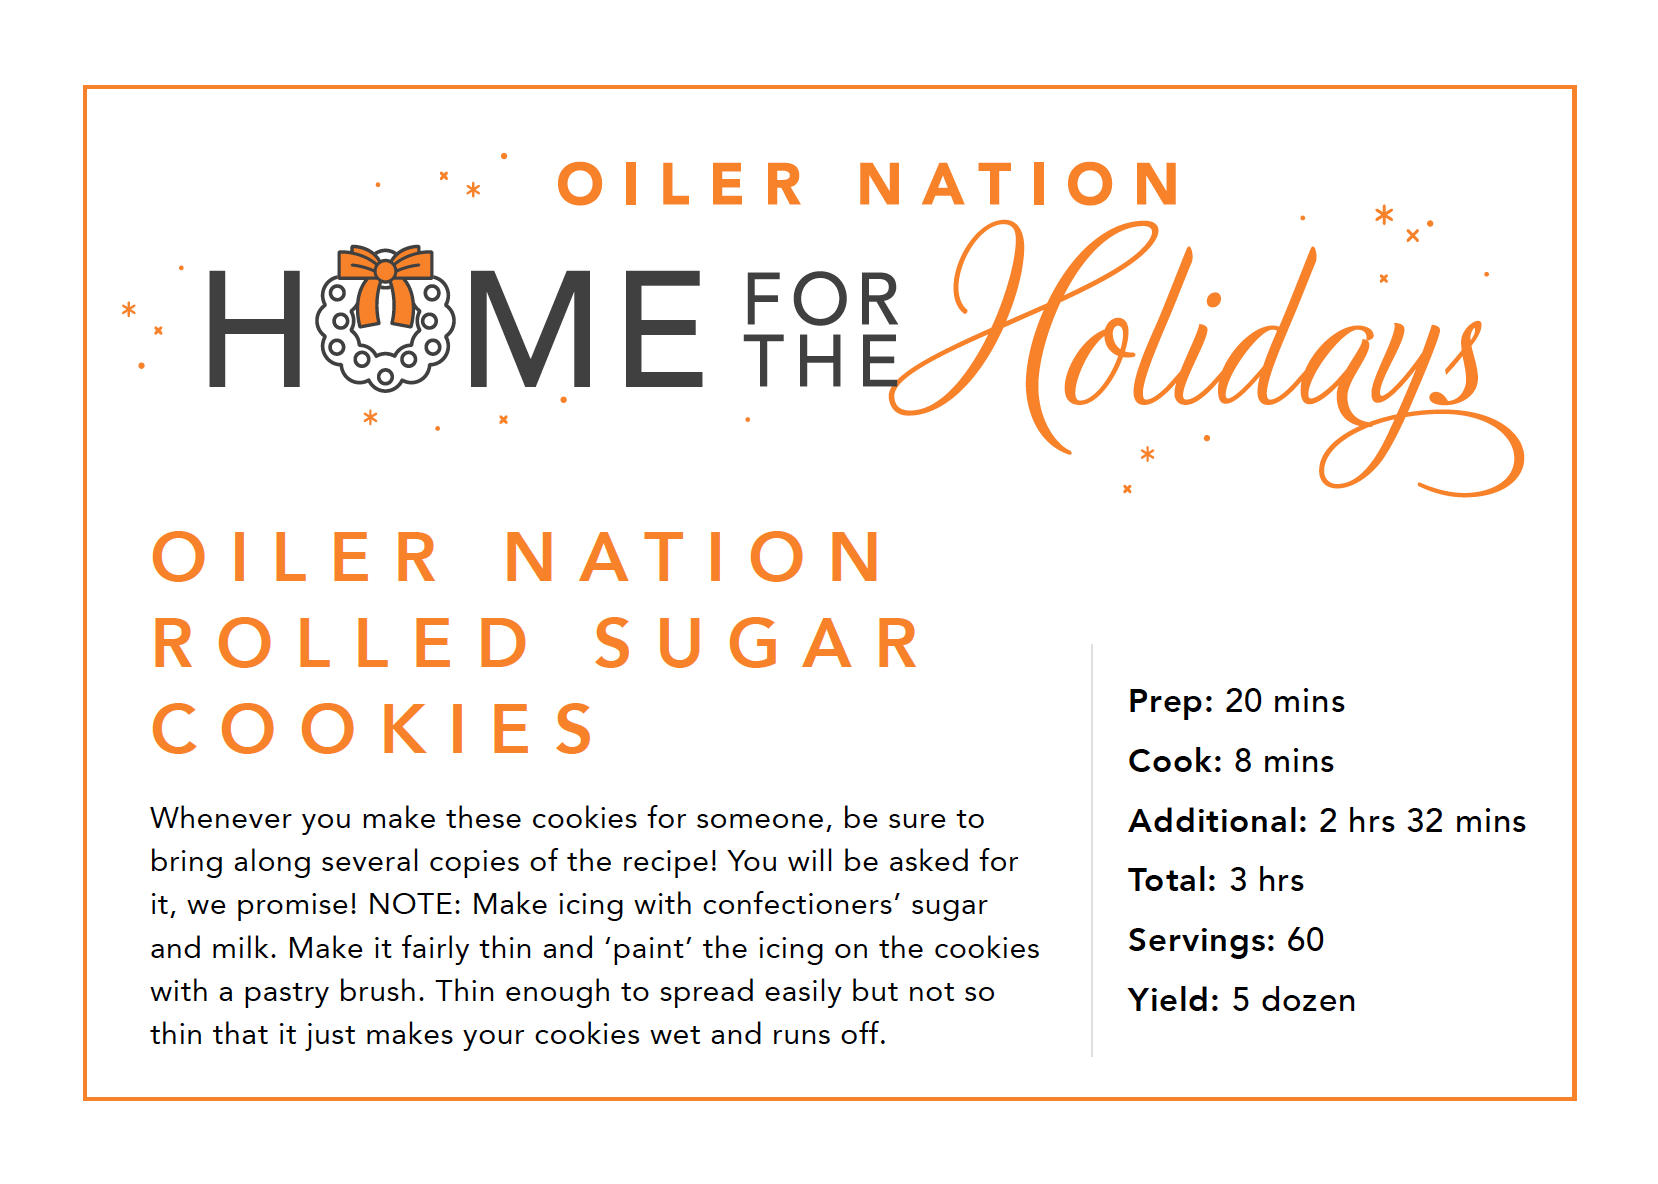 Oiler Nation Home for the Holidays cookie recipe card